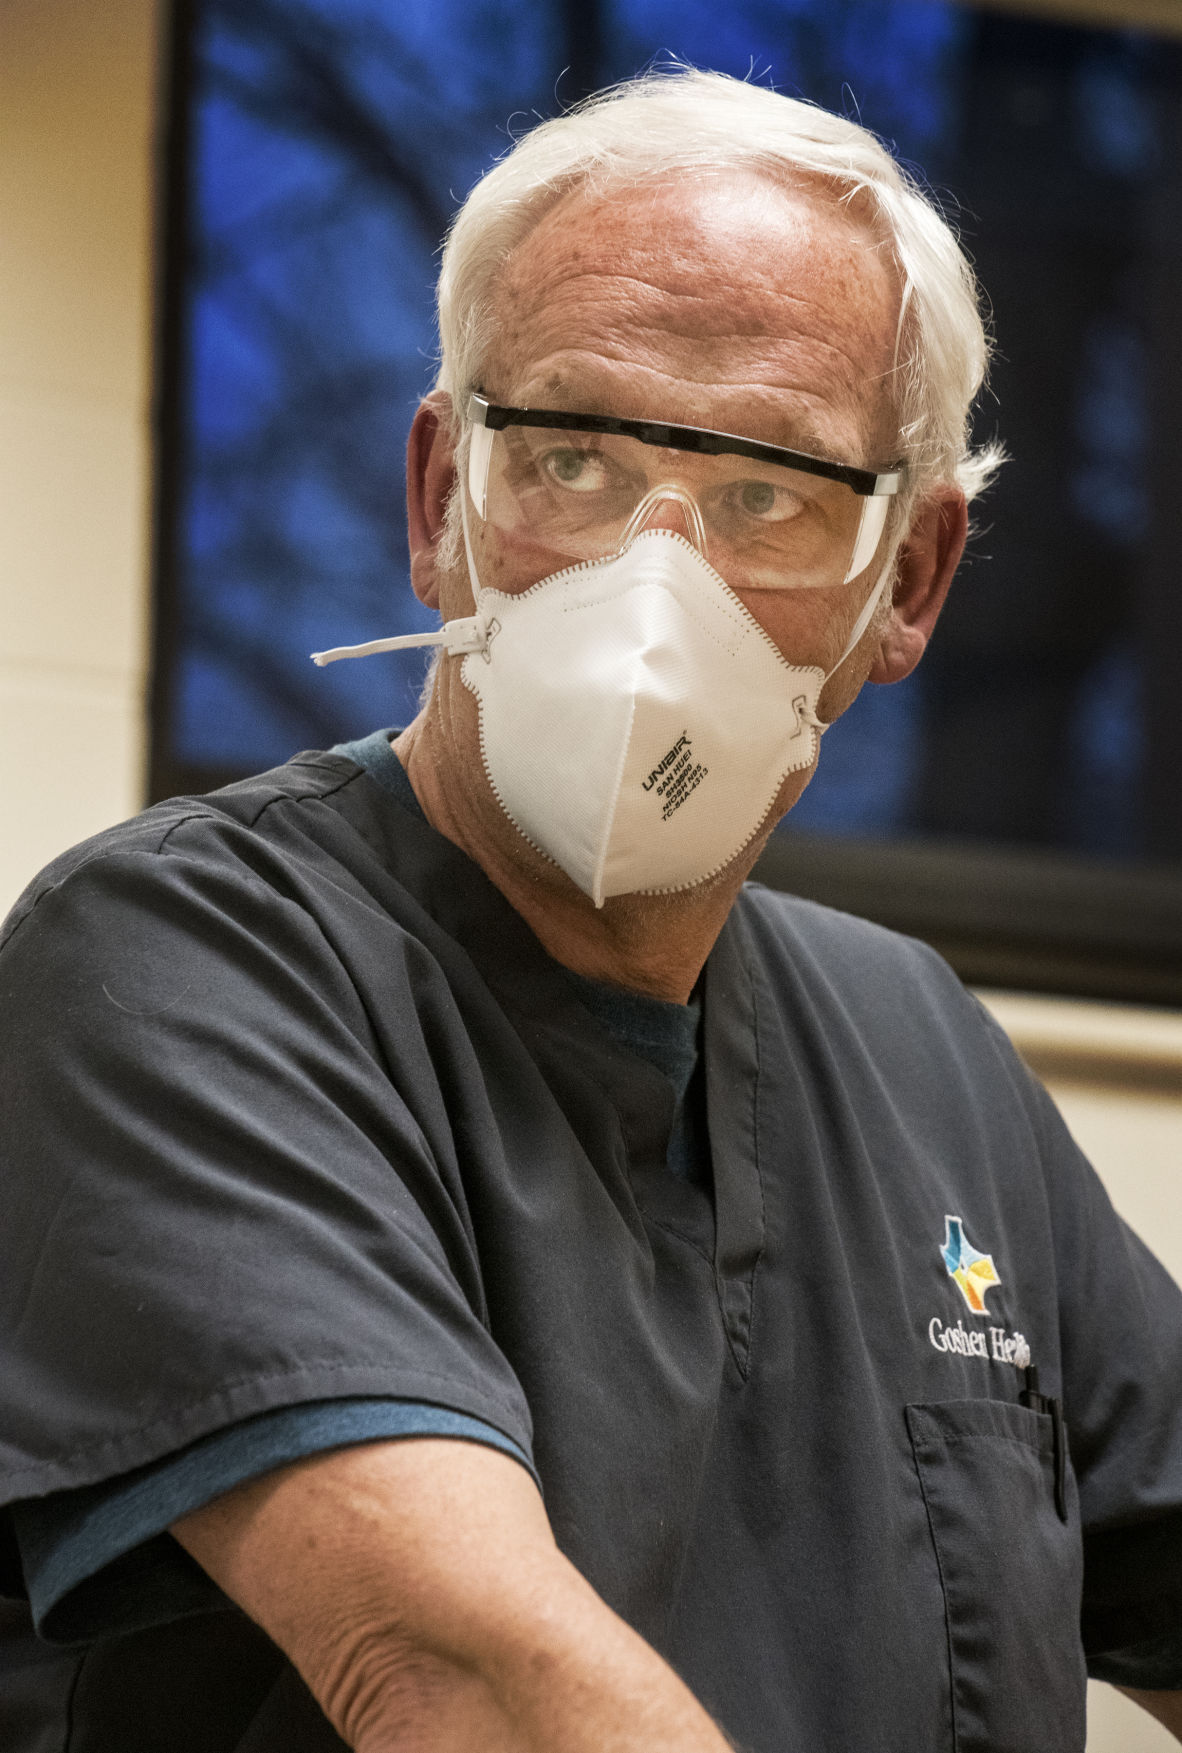 Health officers stresses importance of masks